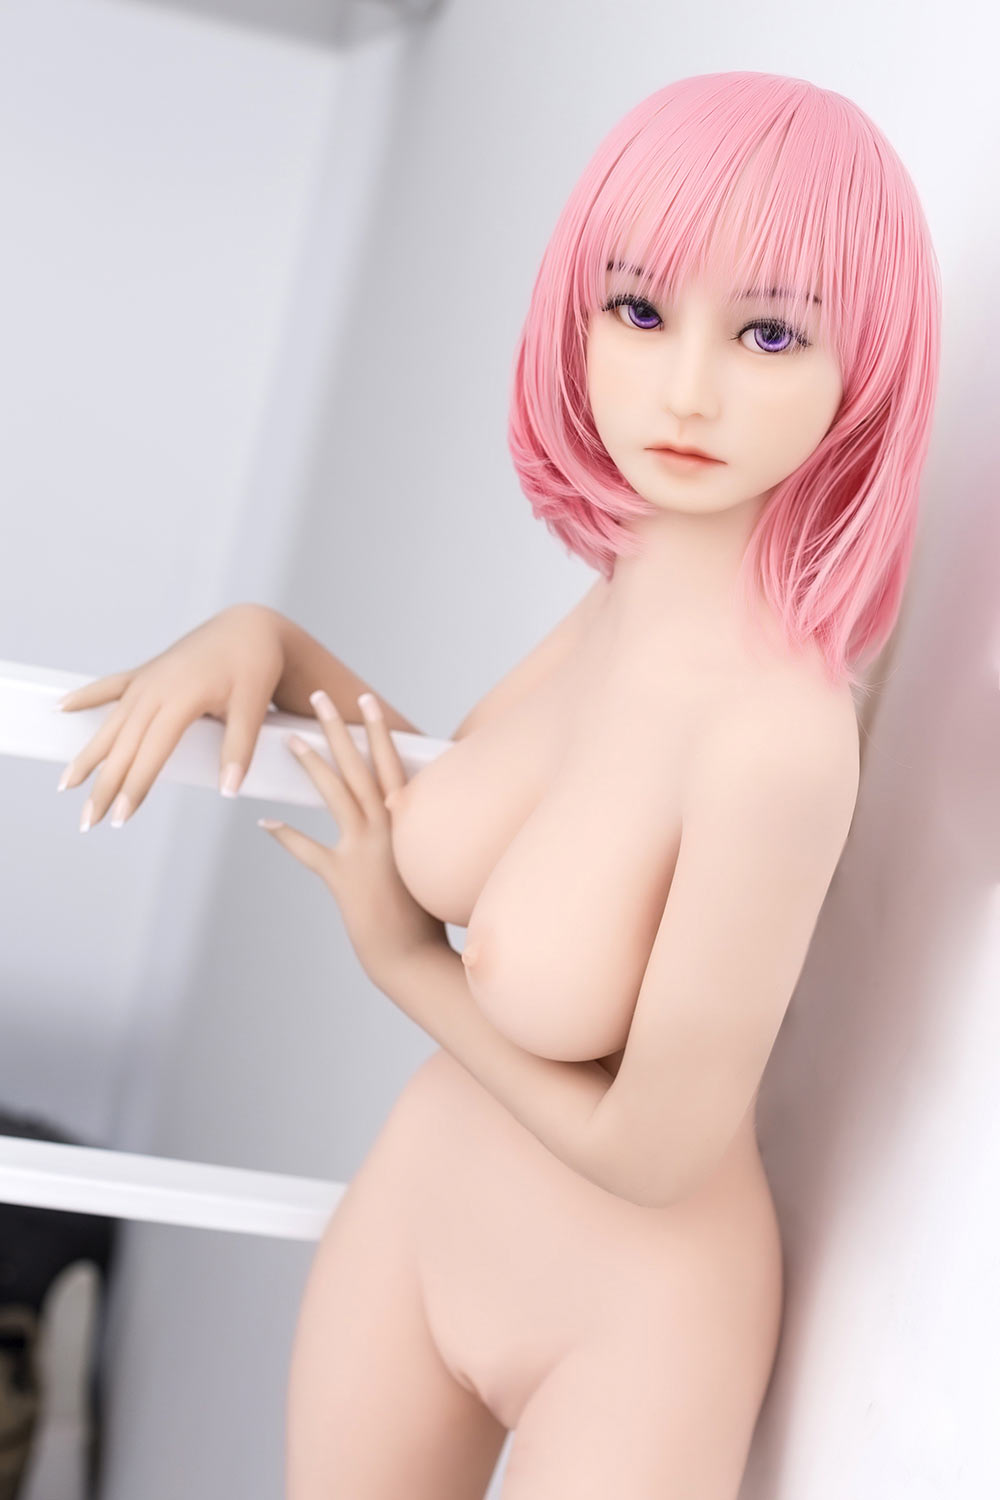 A mini sex doll with naked and flesh-colored breasts